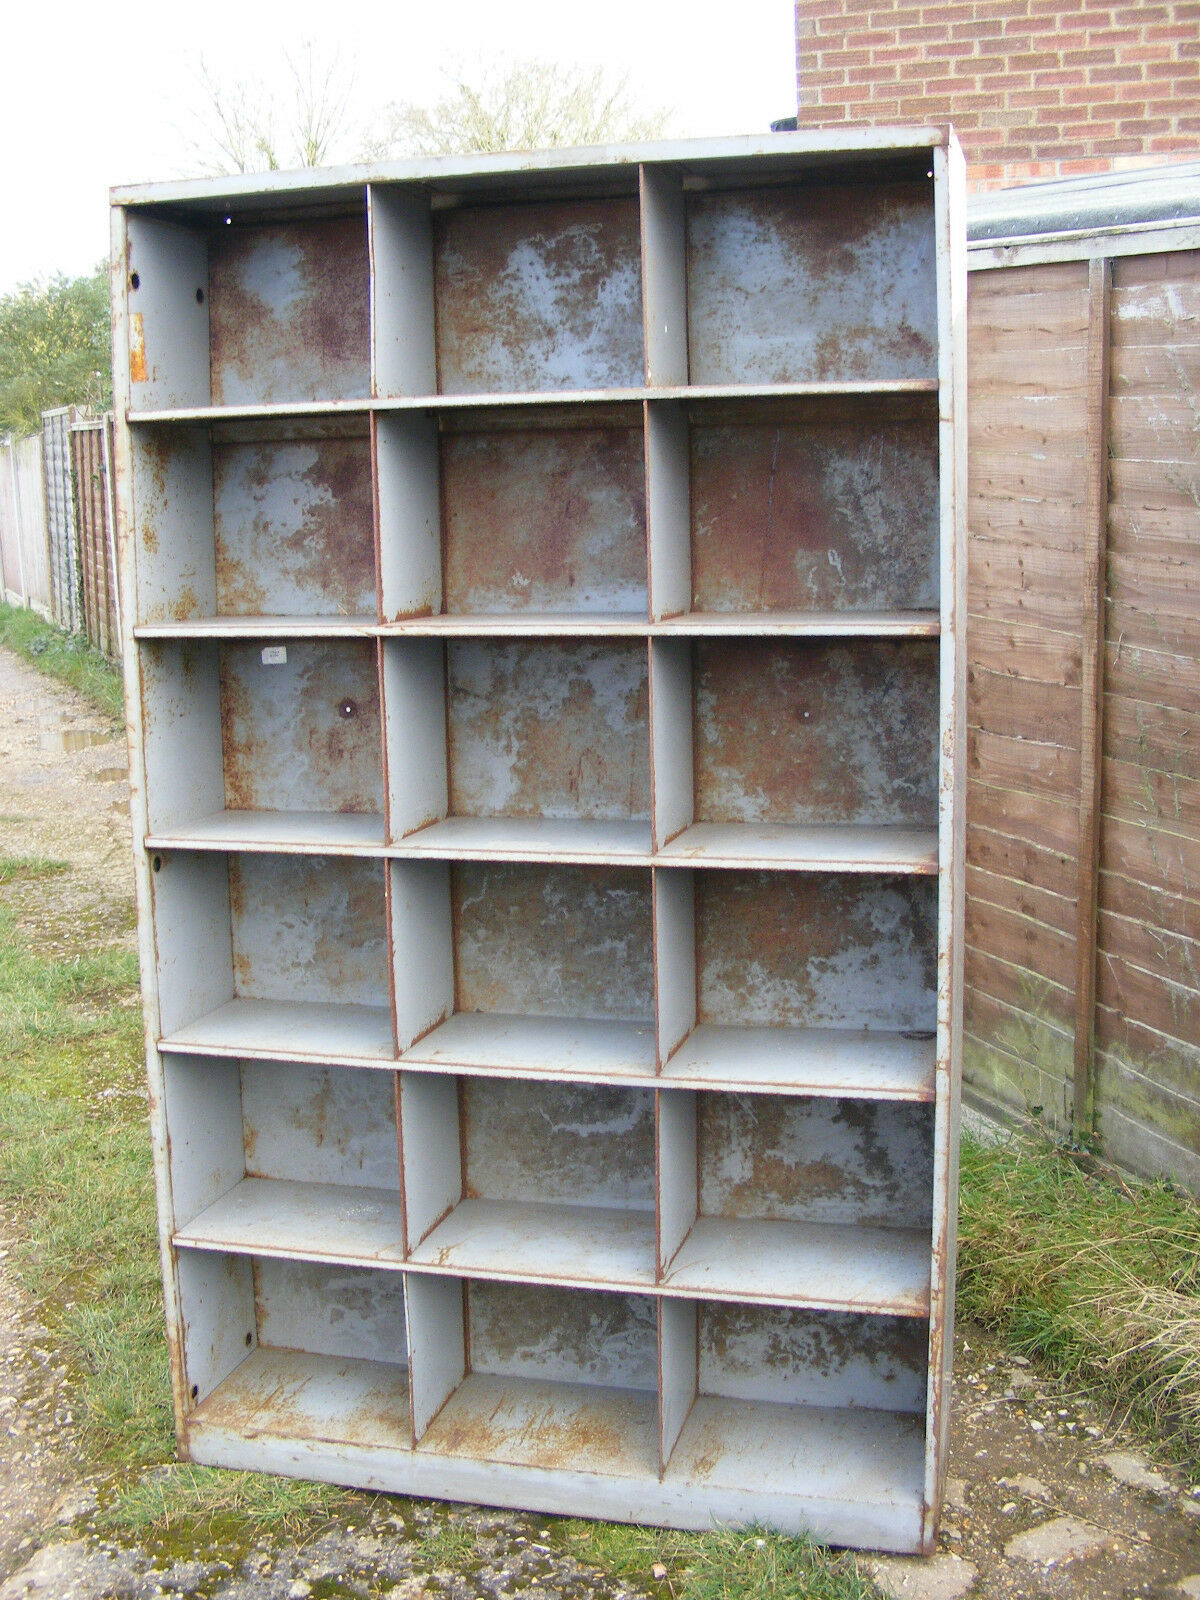 Vintage Retro VICKERS Industrial Metal Pigeon Hole Cabinet Shelving Storage Unit